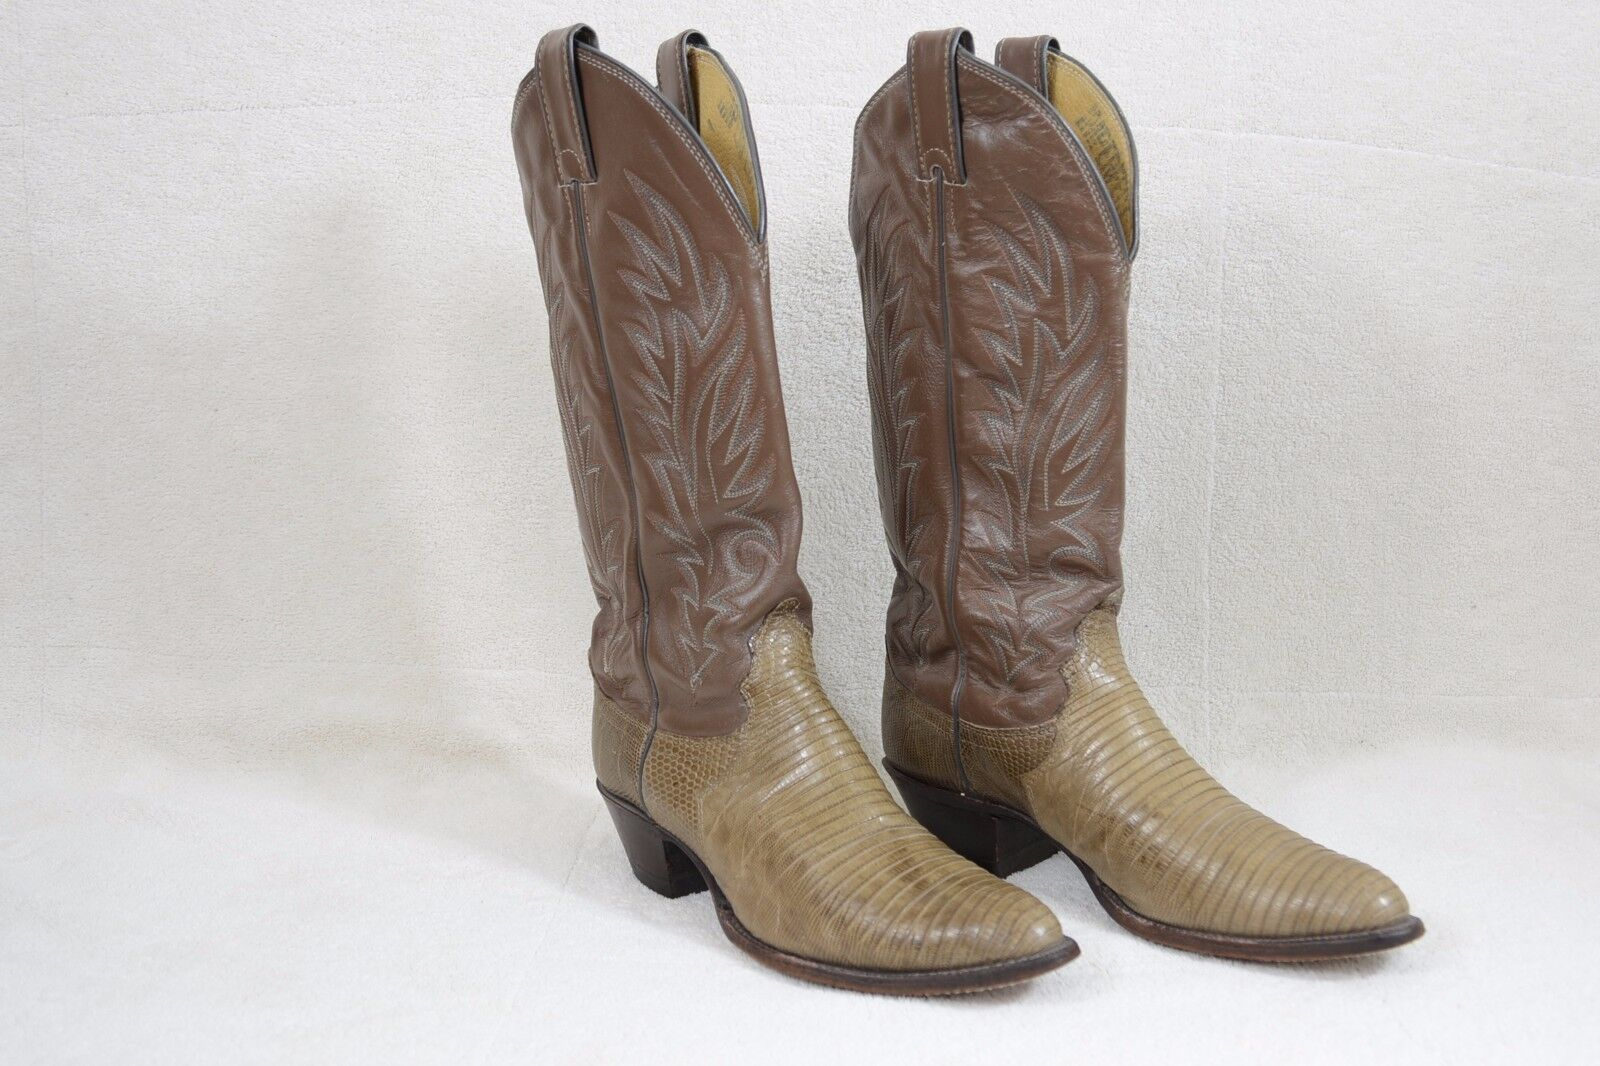 Justin 4701 Womens 6.5B Western Boots Browns Leather & Lizard A91